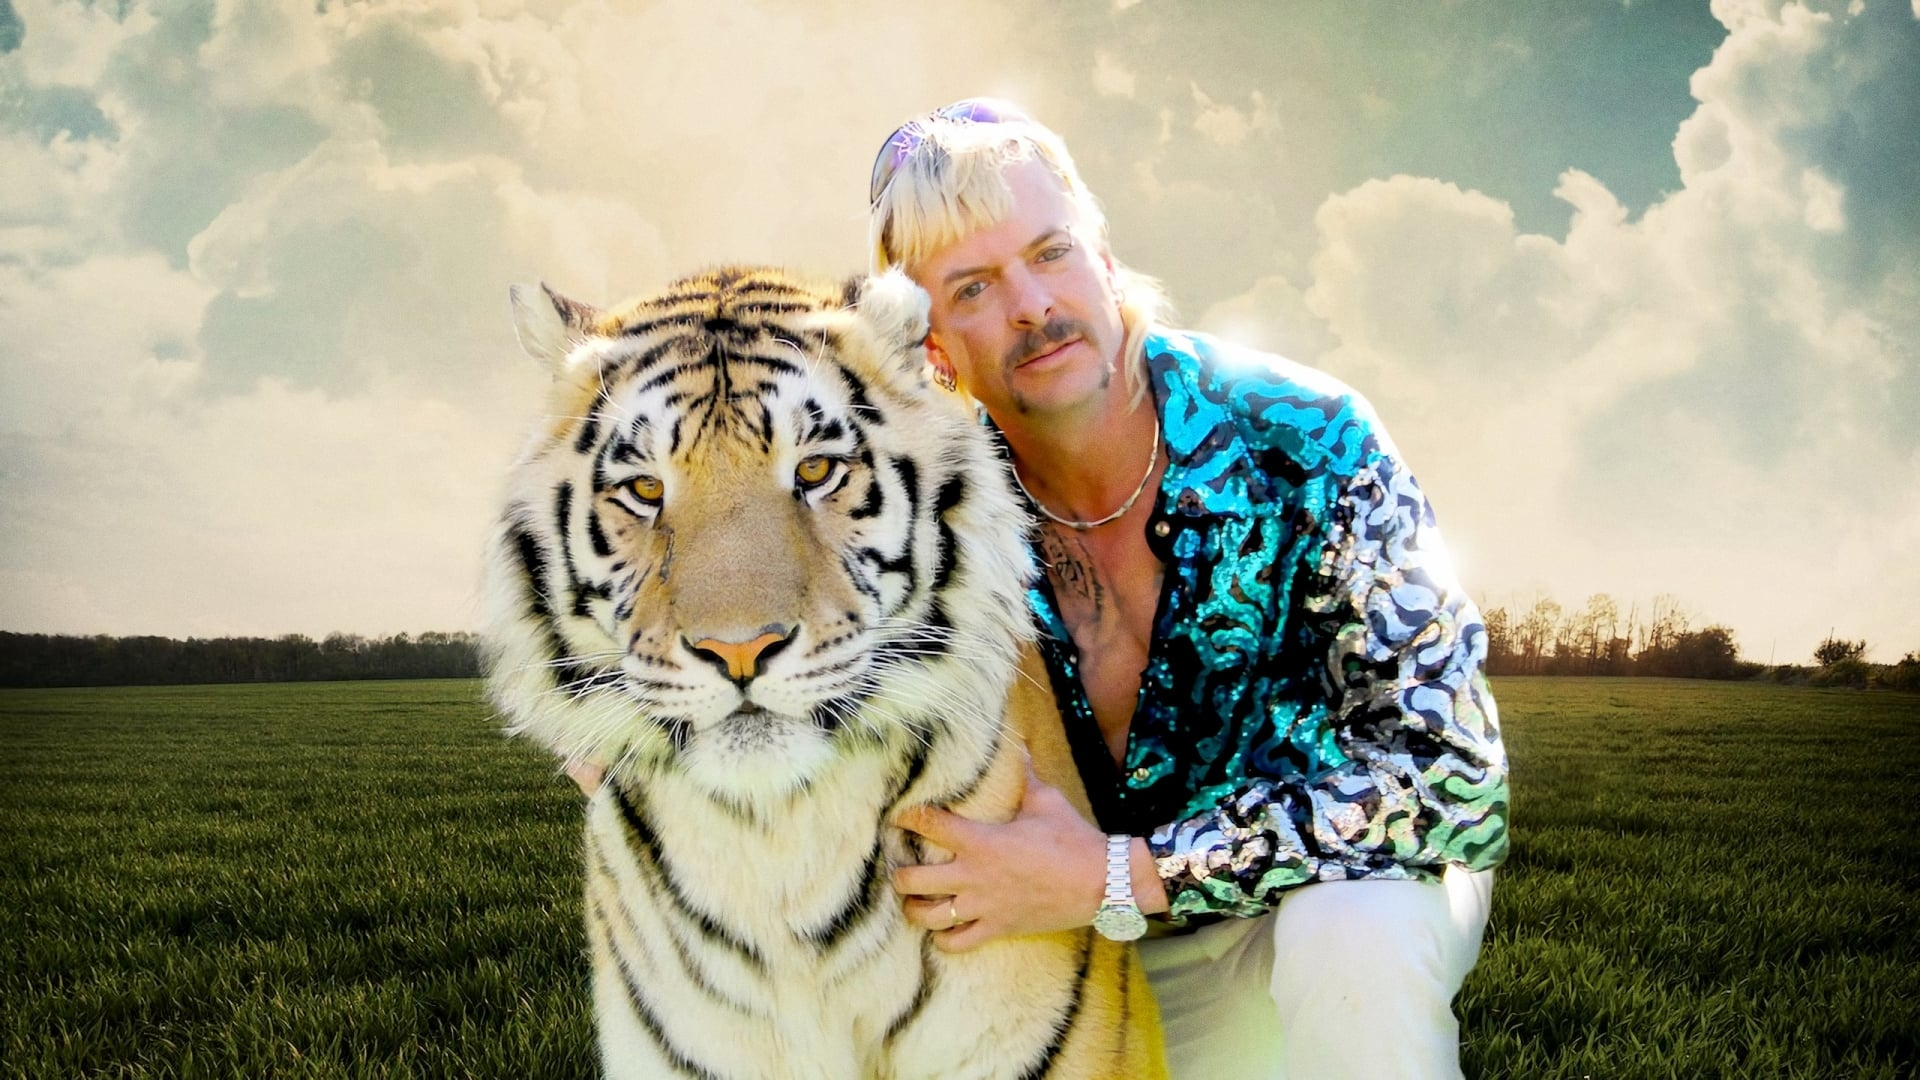 Grab A Tiger King Zoom Background And Make Your Conference Calls A Little More Exotic Talkandroid Com